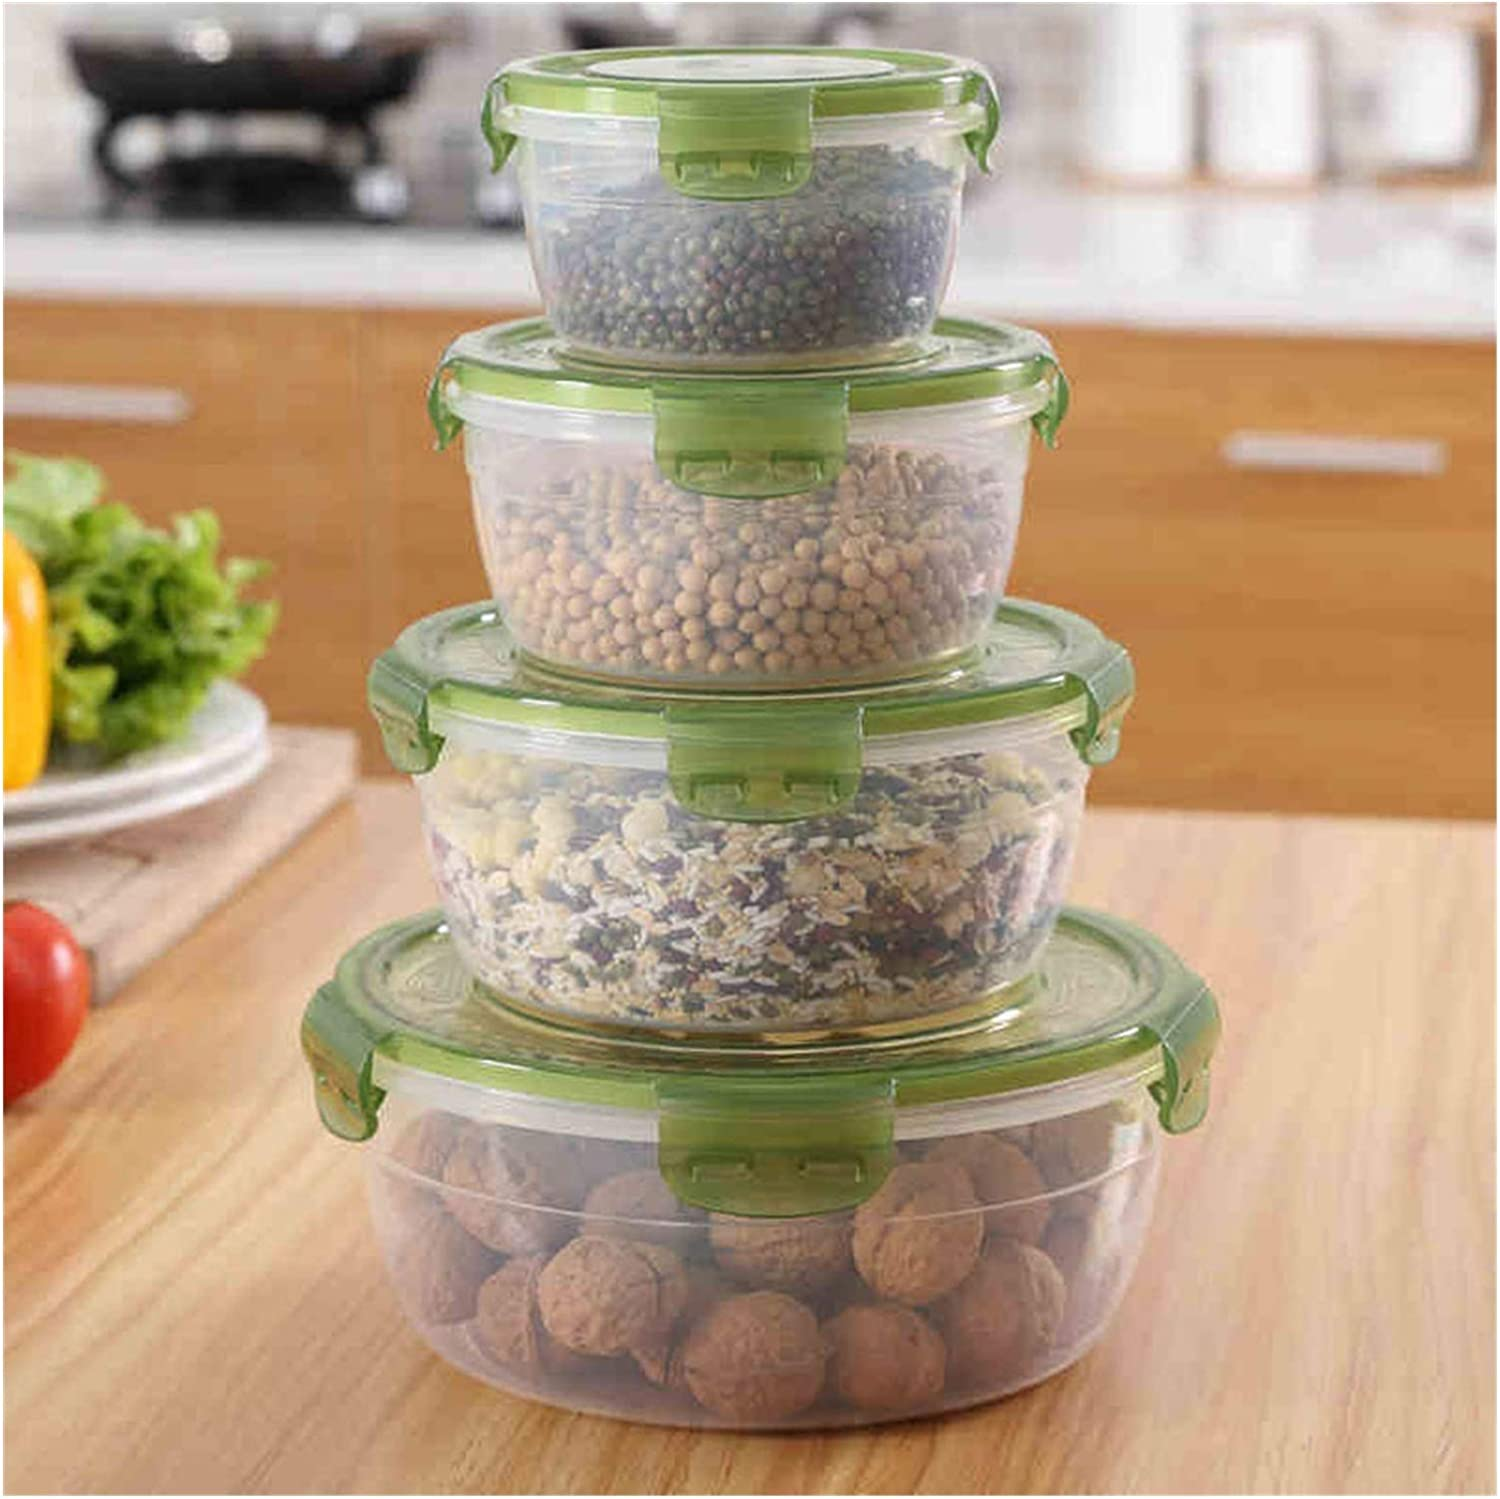 Airtight Containers Storage Container Popular popular Food Transp System Max 77% OFF